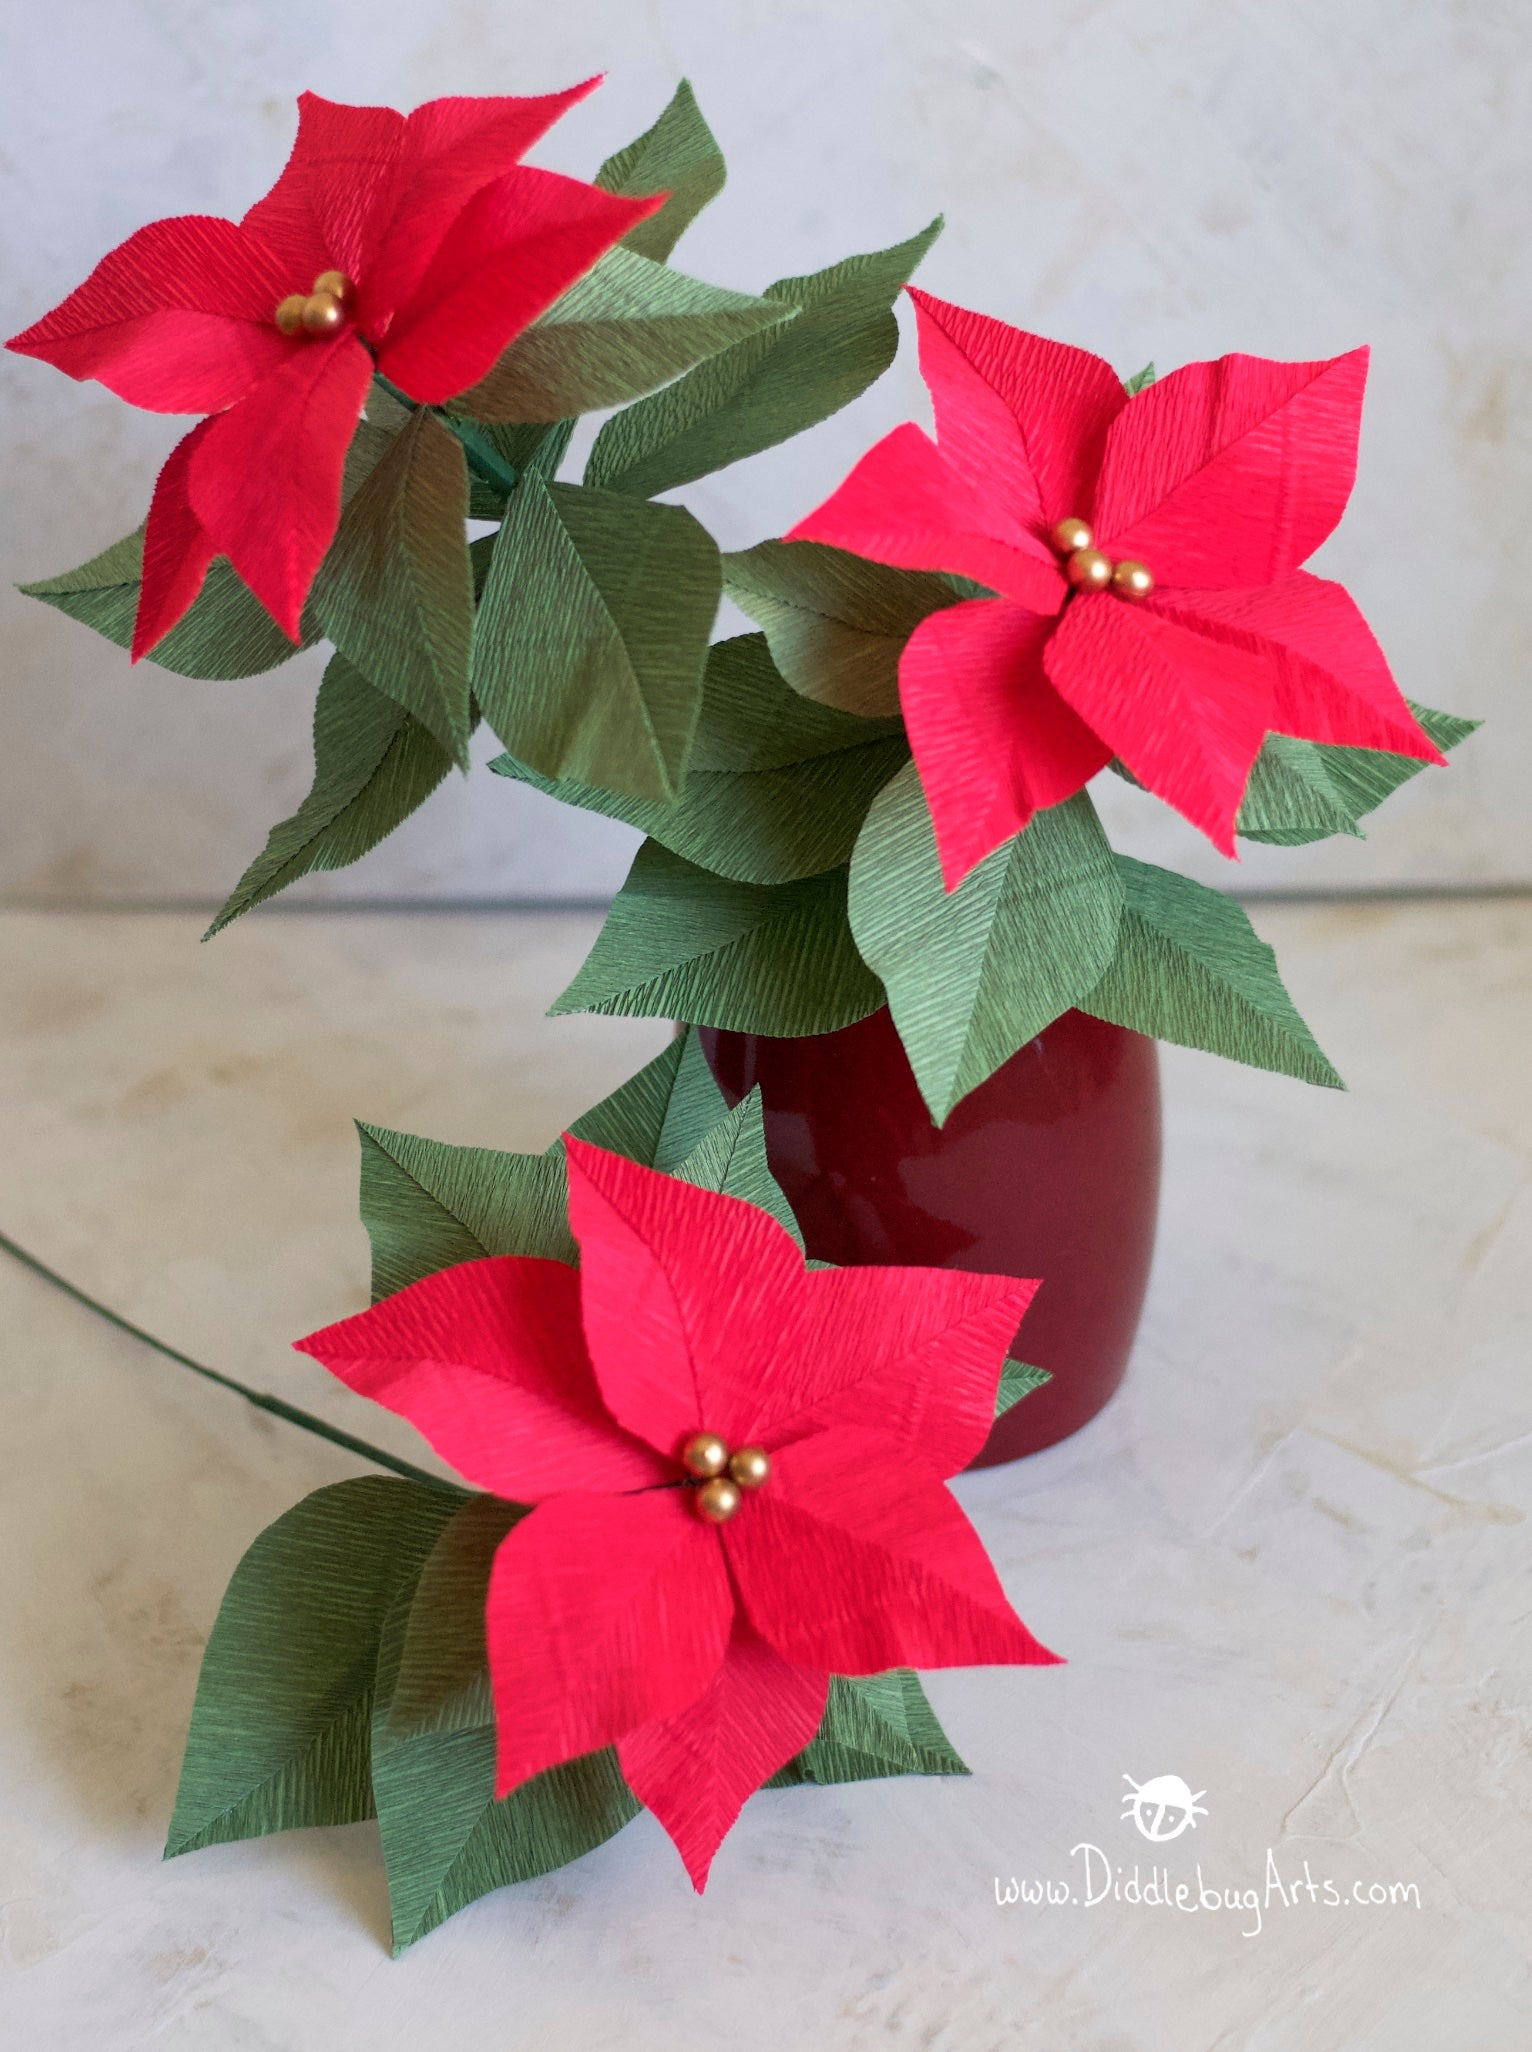 vase with red poinsettia plant made of crepe paper